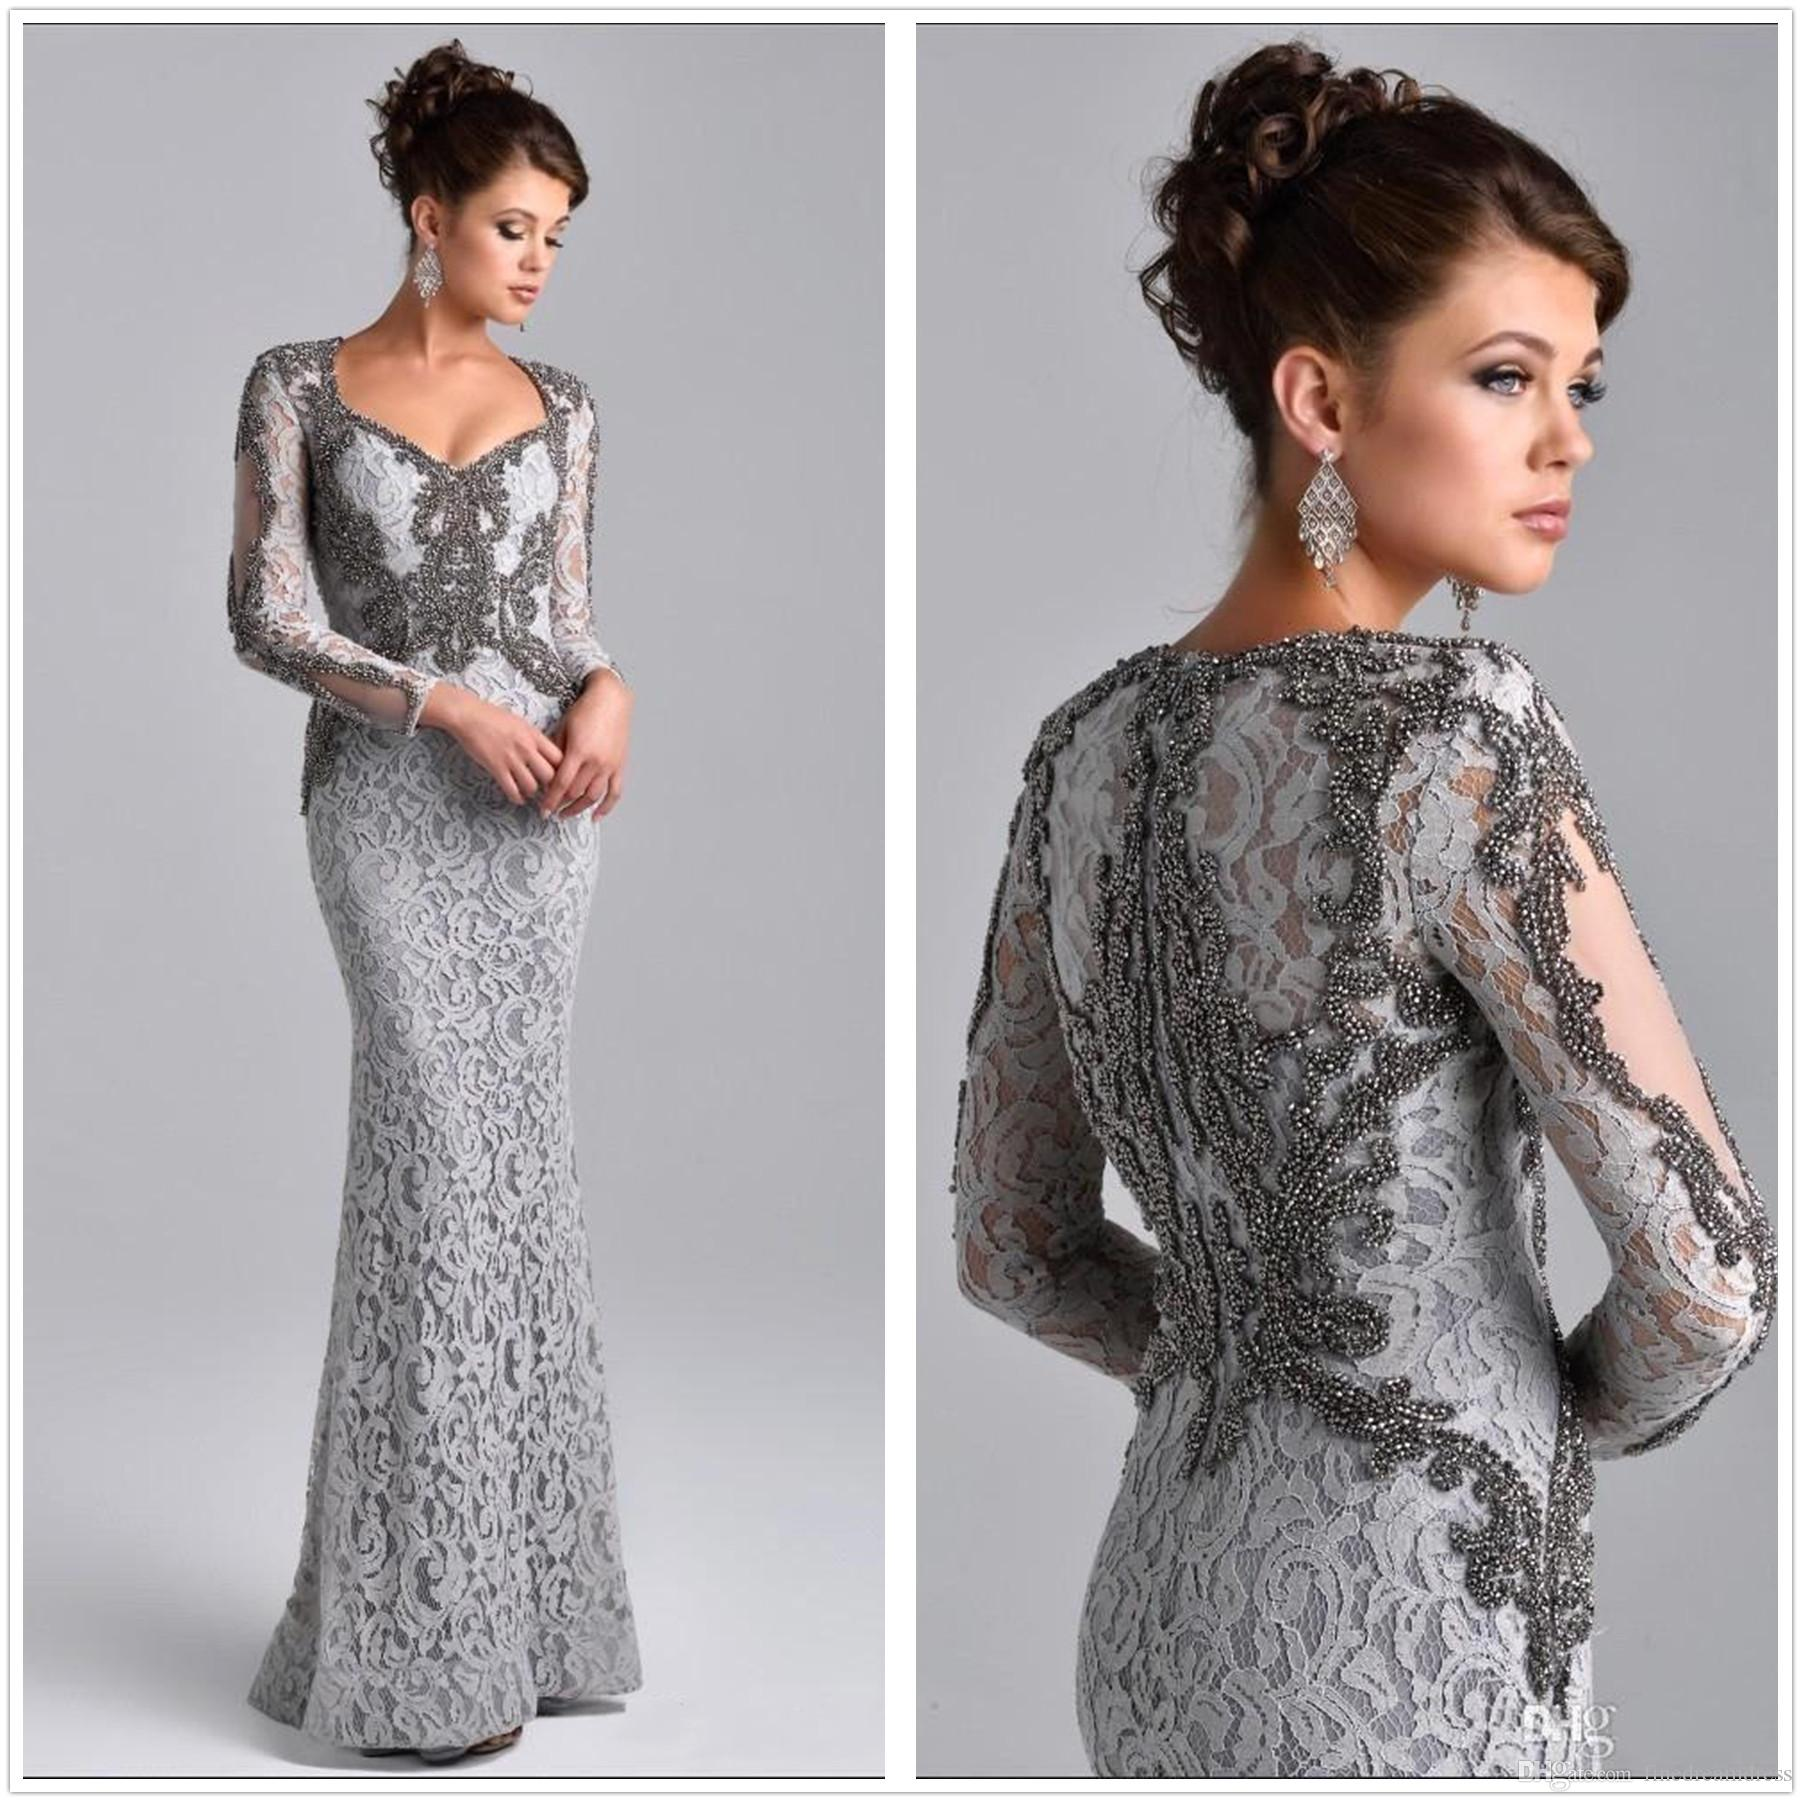 Arabic Scoop Neck Long Sleeves Lace Mermaid Long Evening Dresses Beaded Stones Floor Length Formal Party Prom Dresses